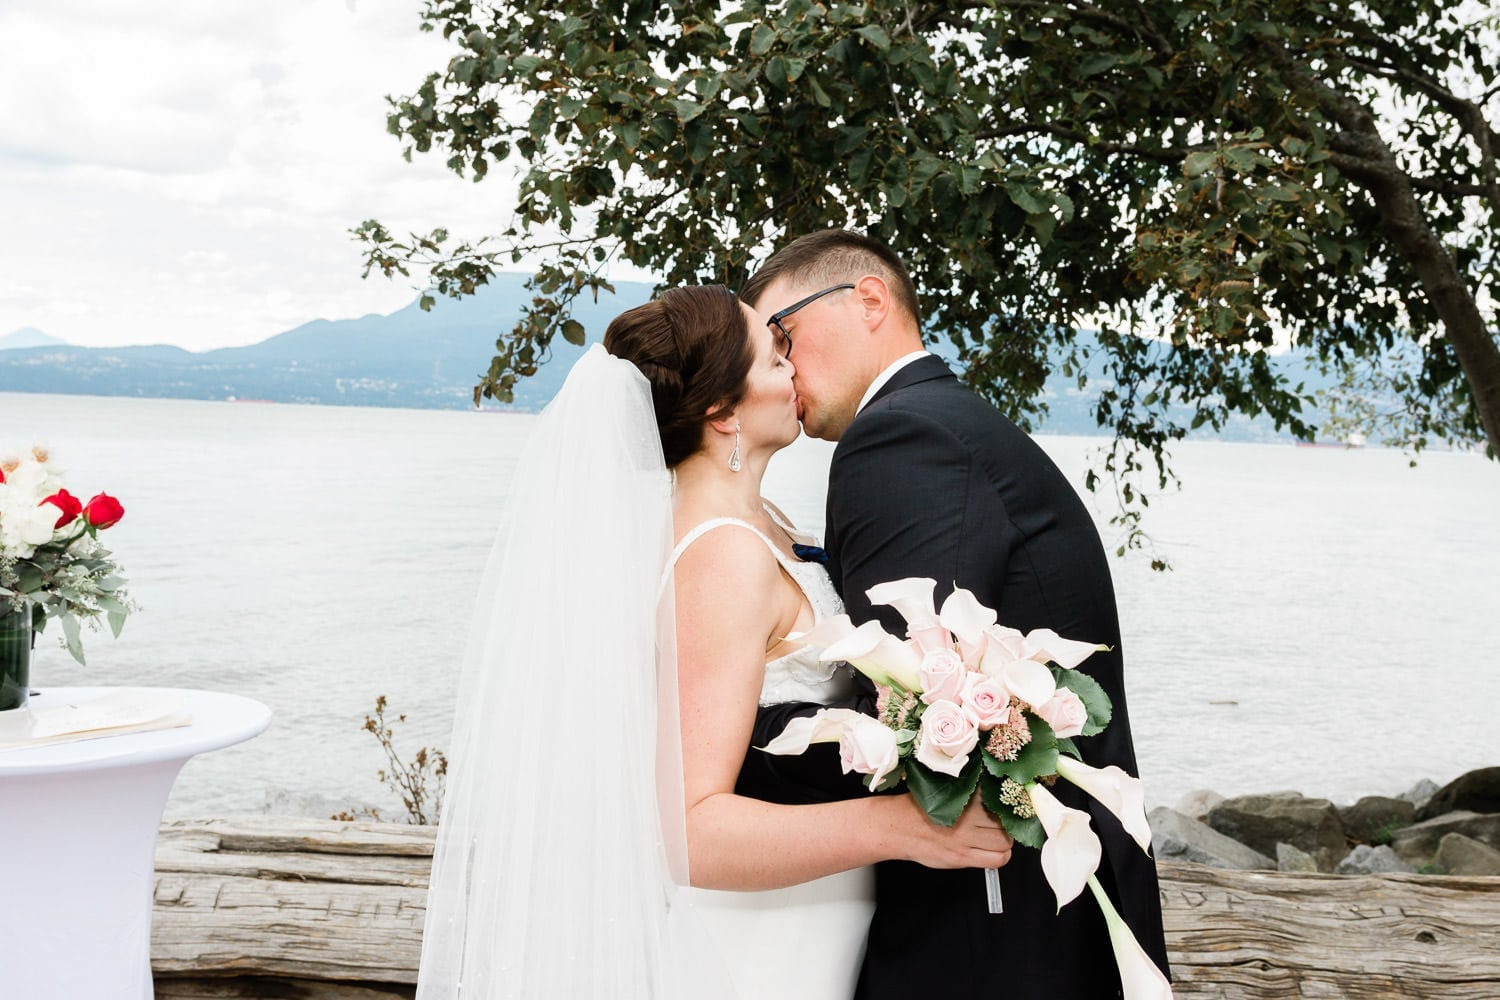 Wedding ceremony on Spanish banks | Vancouver wedding photographer wedding on Spanish banks